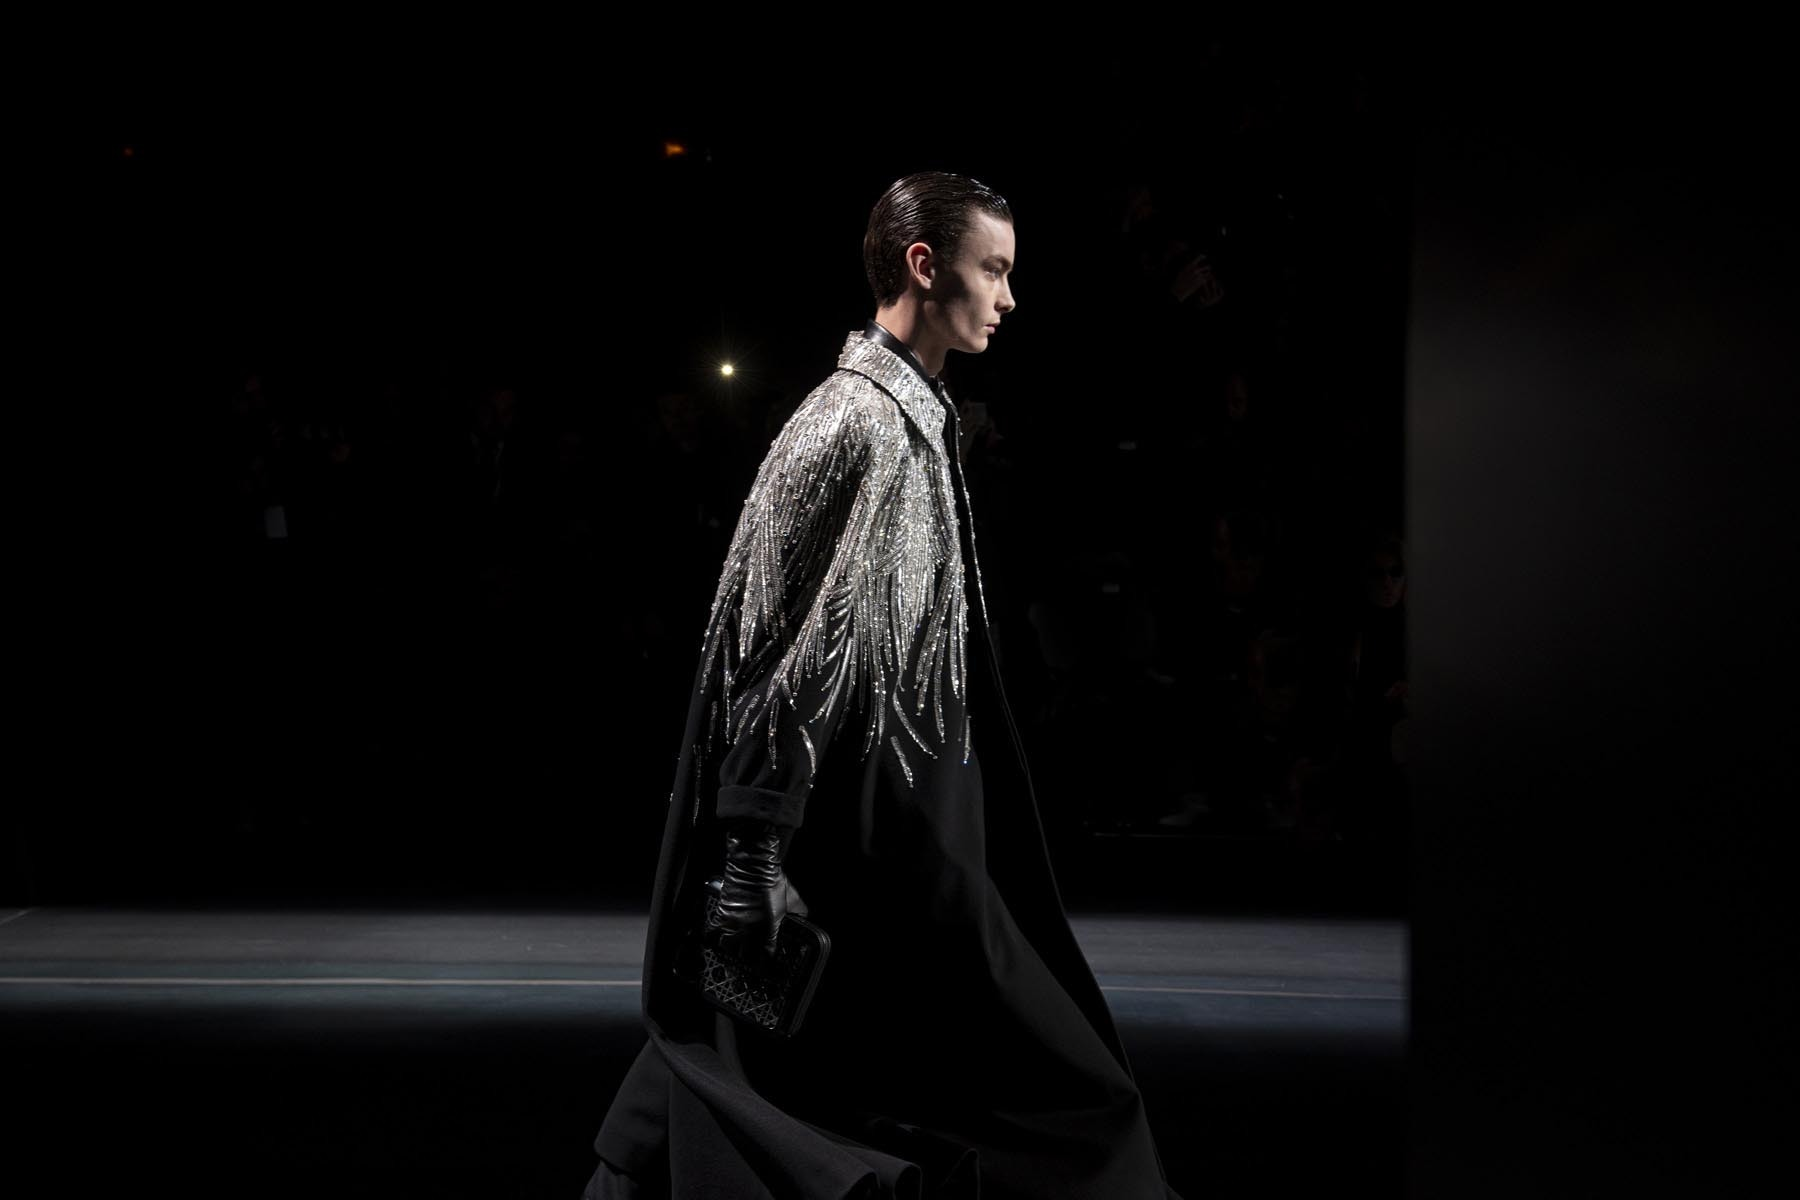 Dior-Homme-Hiver-2020-21-17